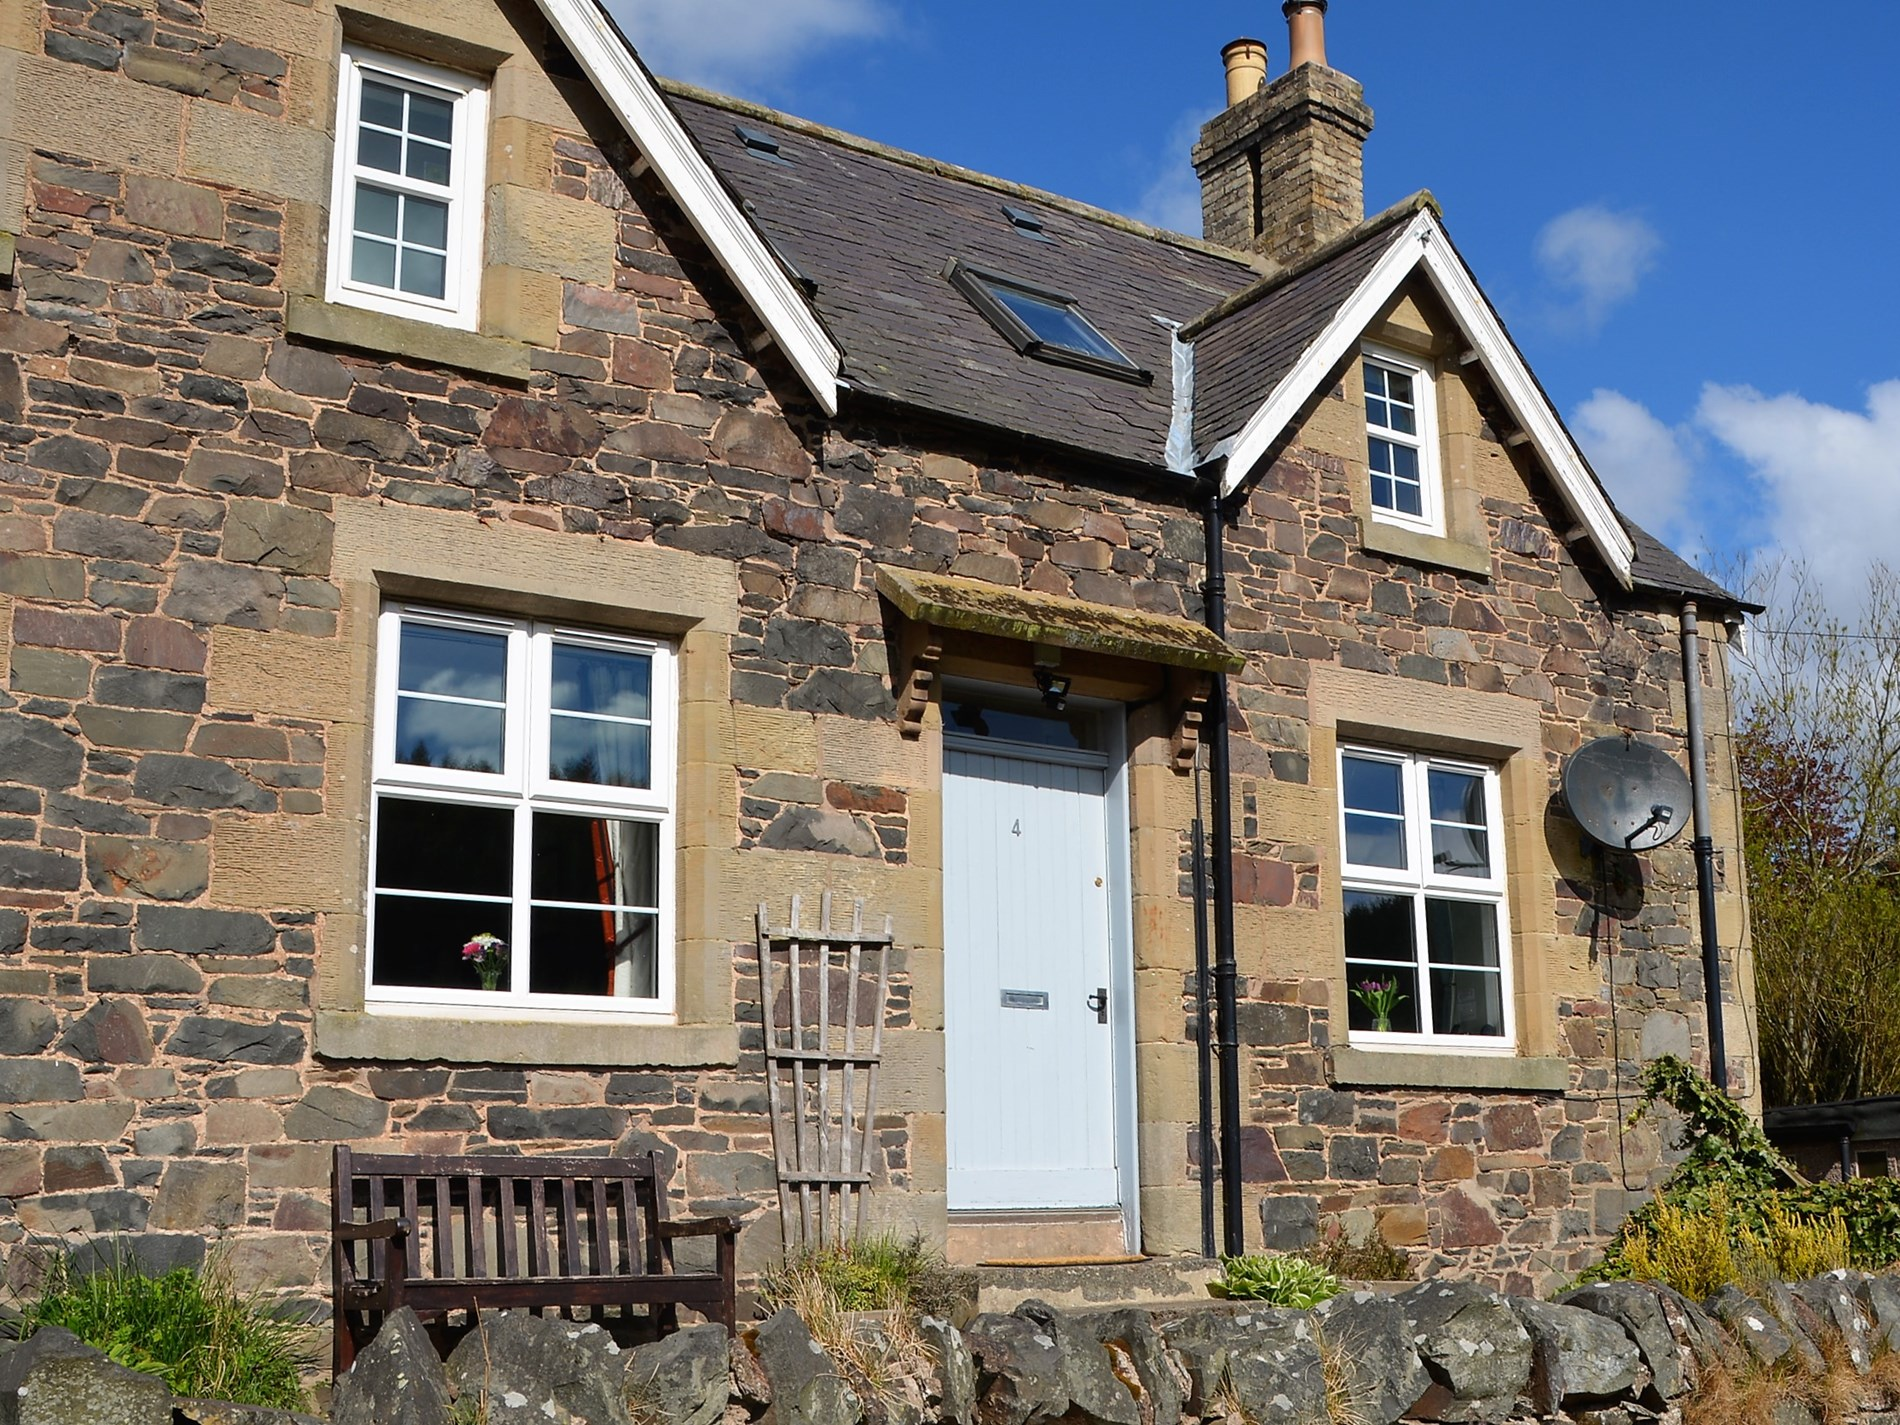 2 Bedroom Cottage in Duns, Scottish Borders